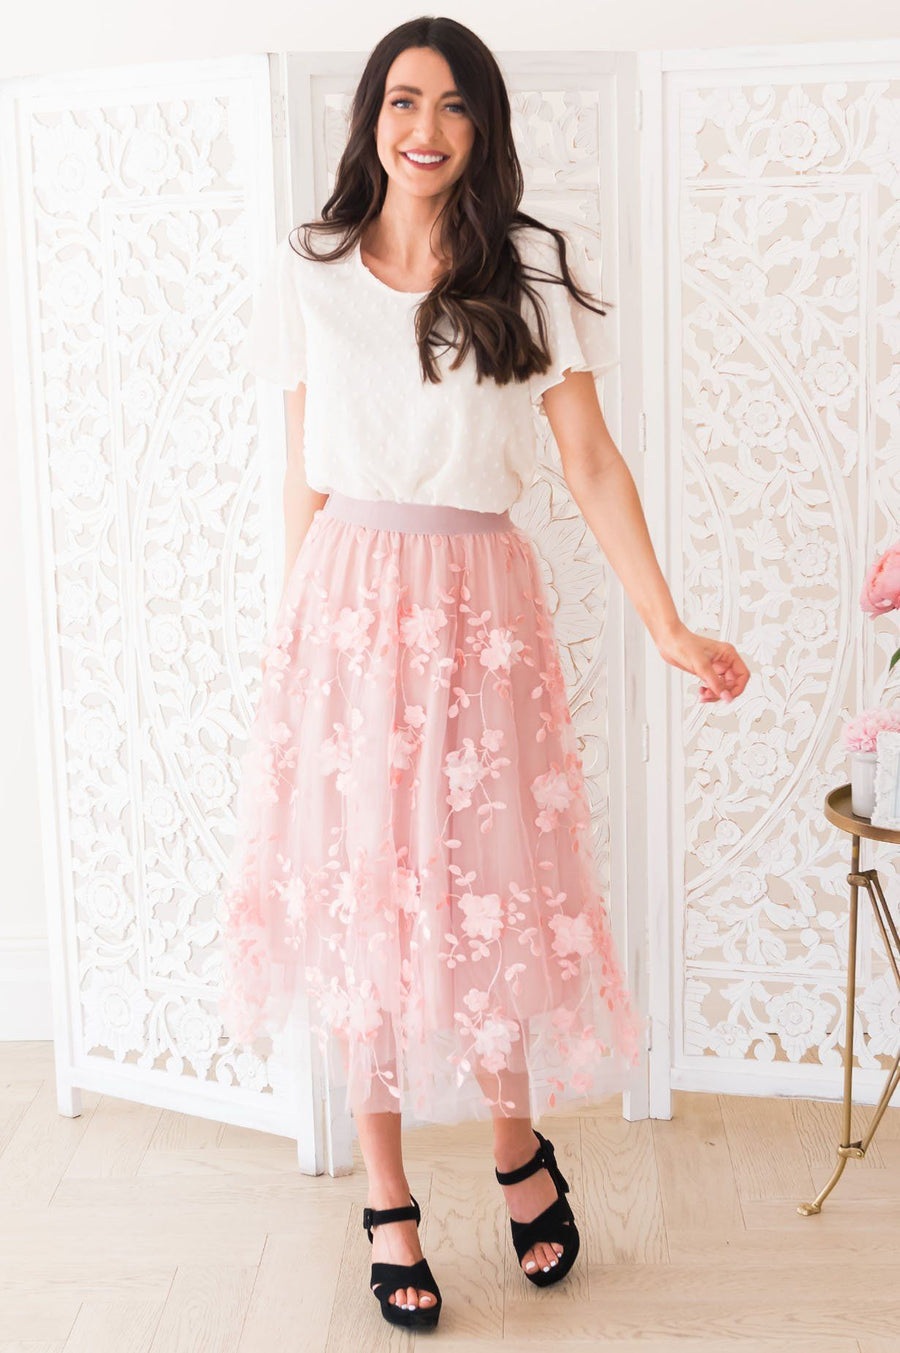 Fairytale Dreams Modest Tulle Skirt